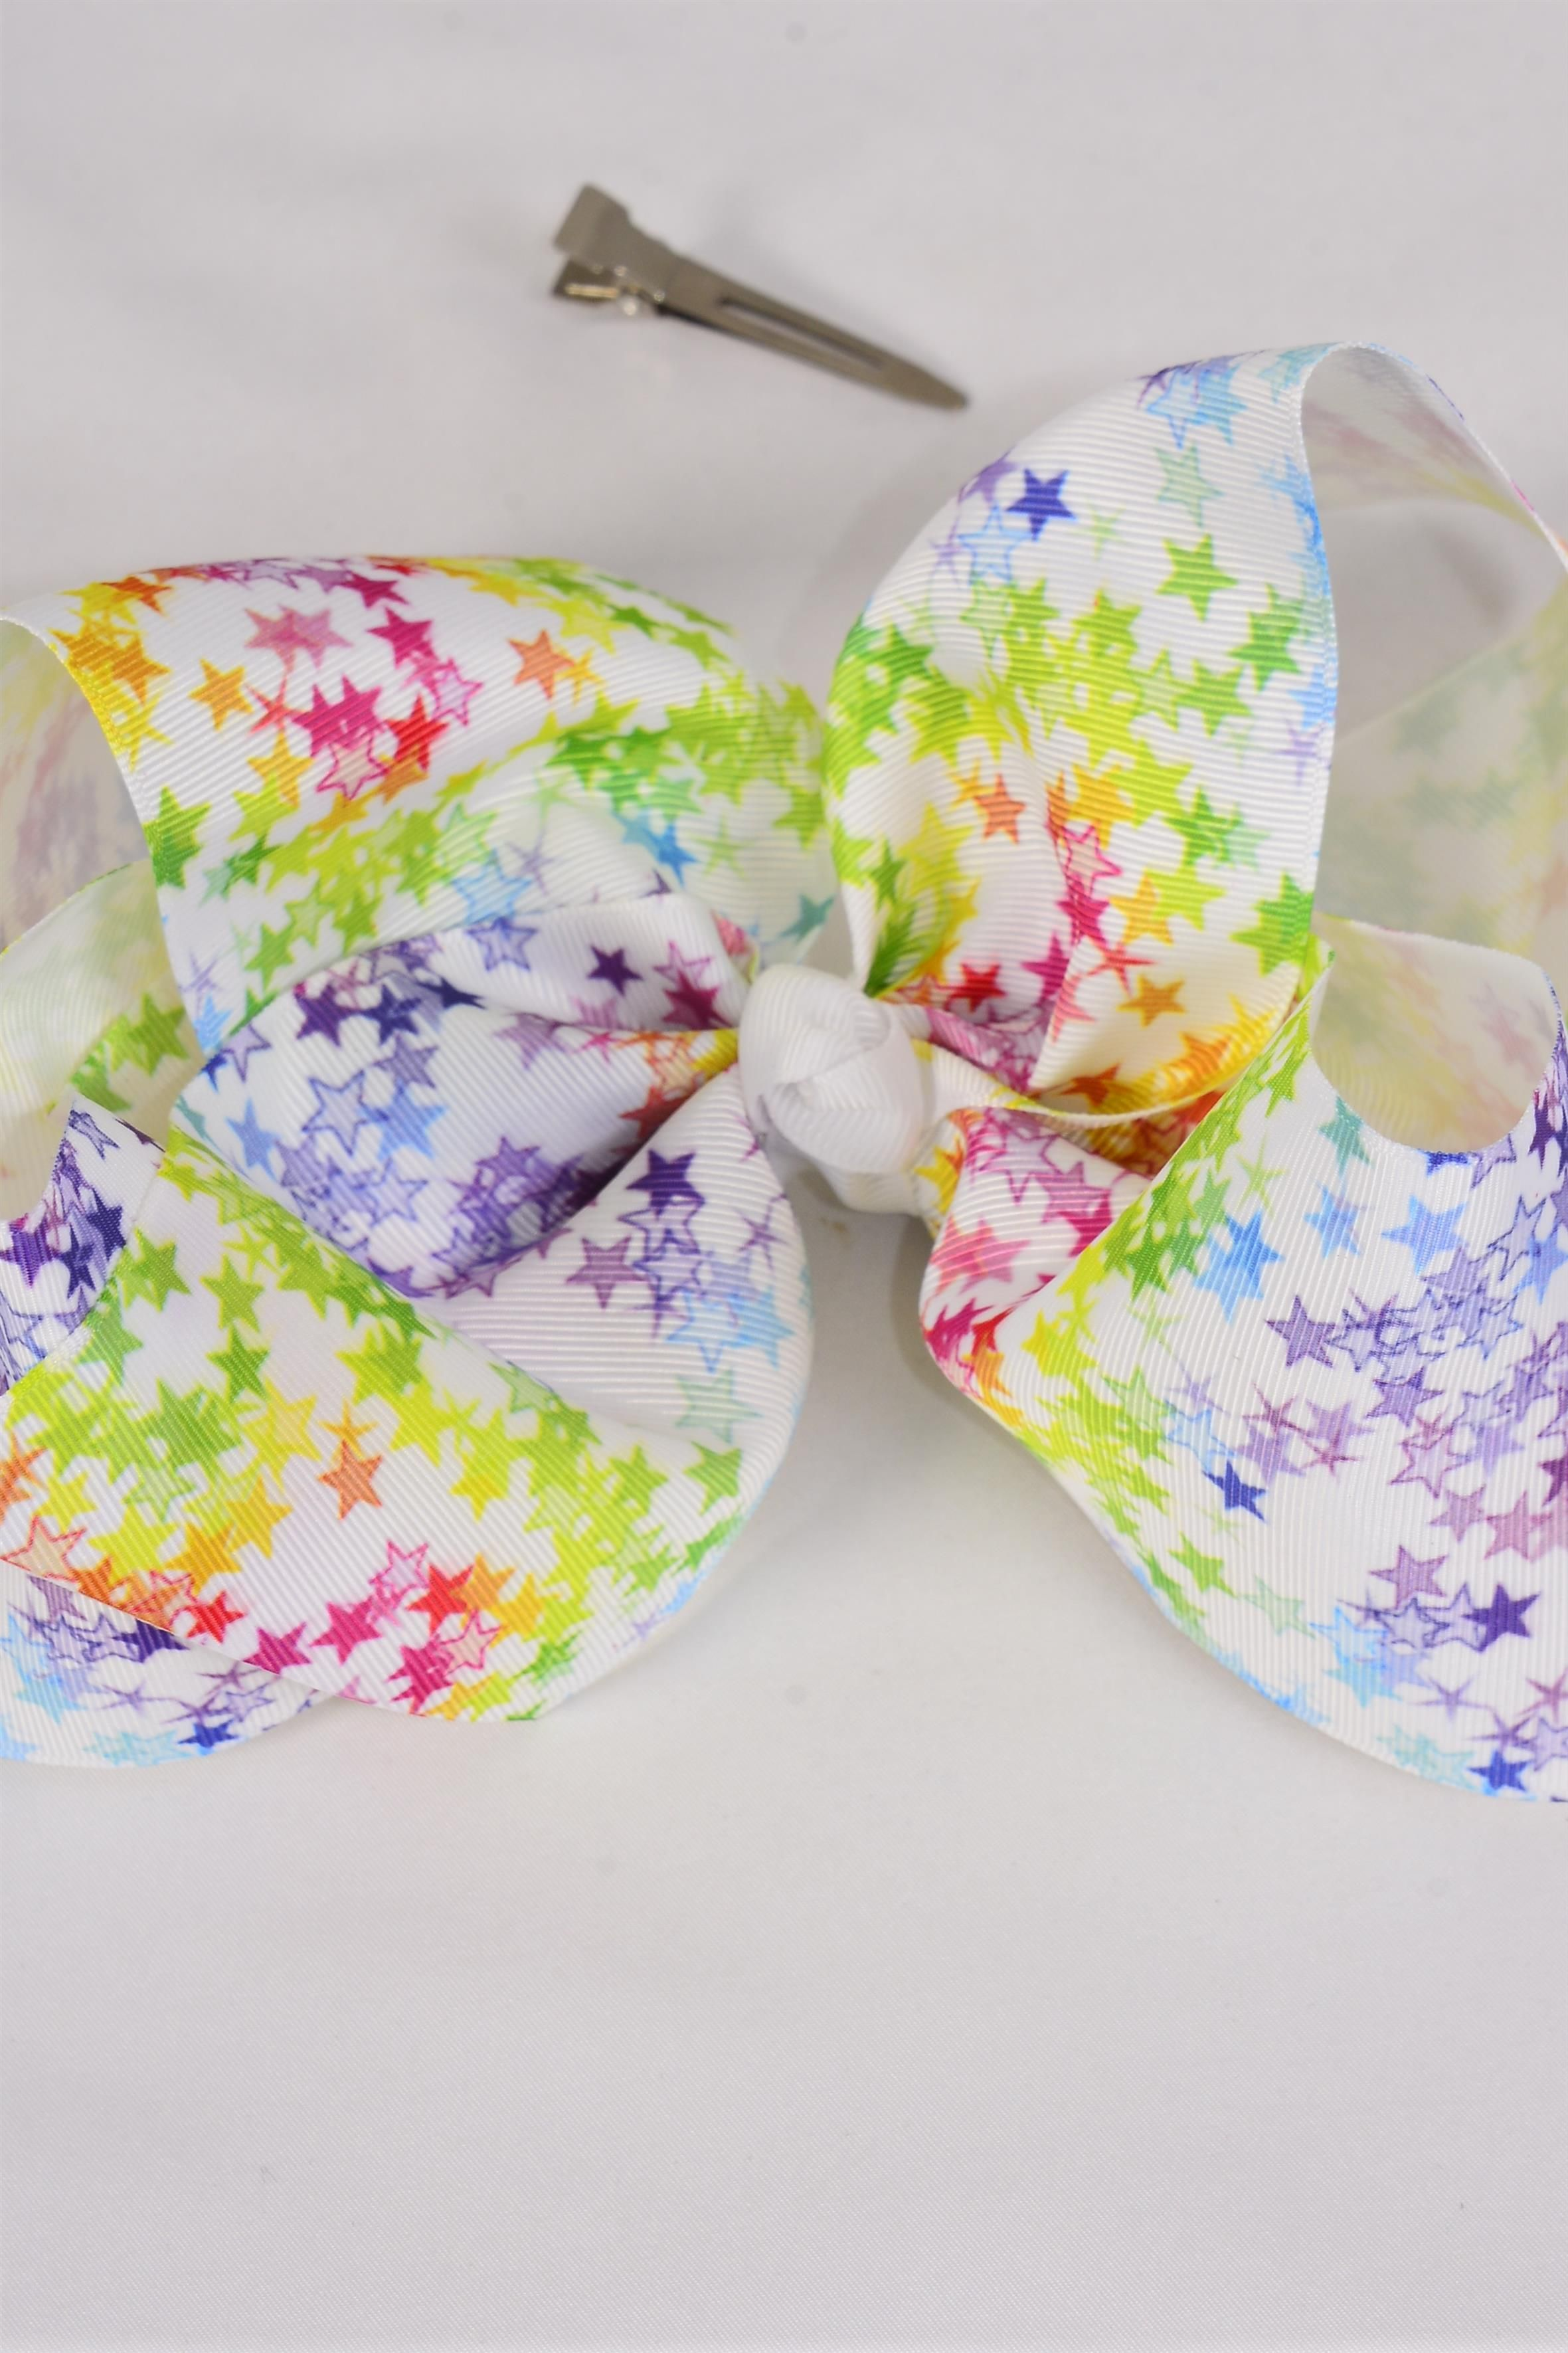 "Hair Bow Extra Jumbo Cheer Type Bow Multi Stars Tiedye Grosgrain Bow-tie/DZ **Alligator Clip** Size-8""x 7"" Wide,Clip Strip & UPC Code"